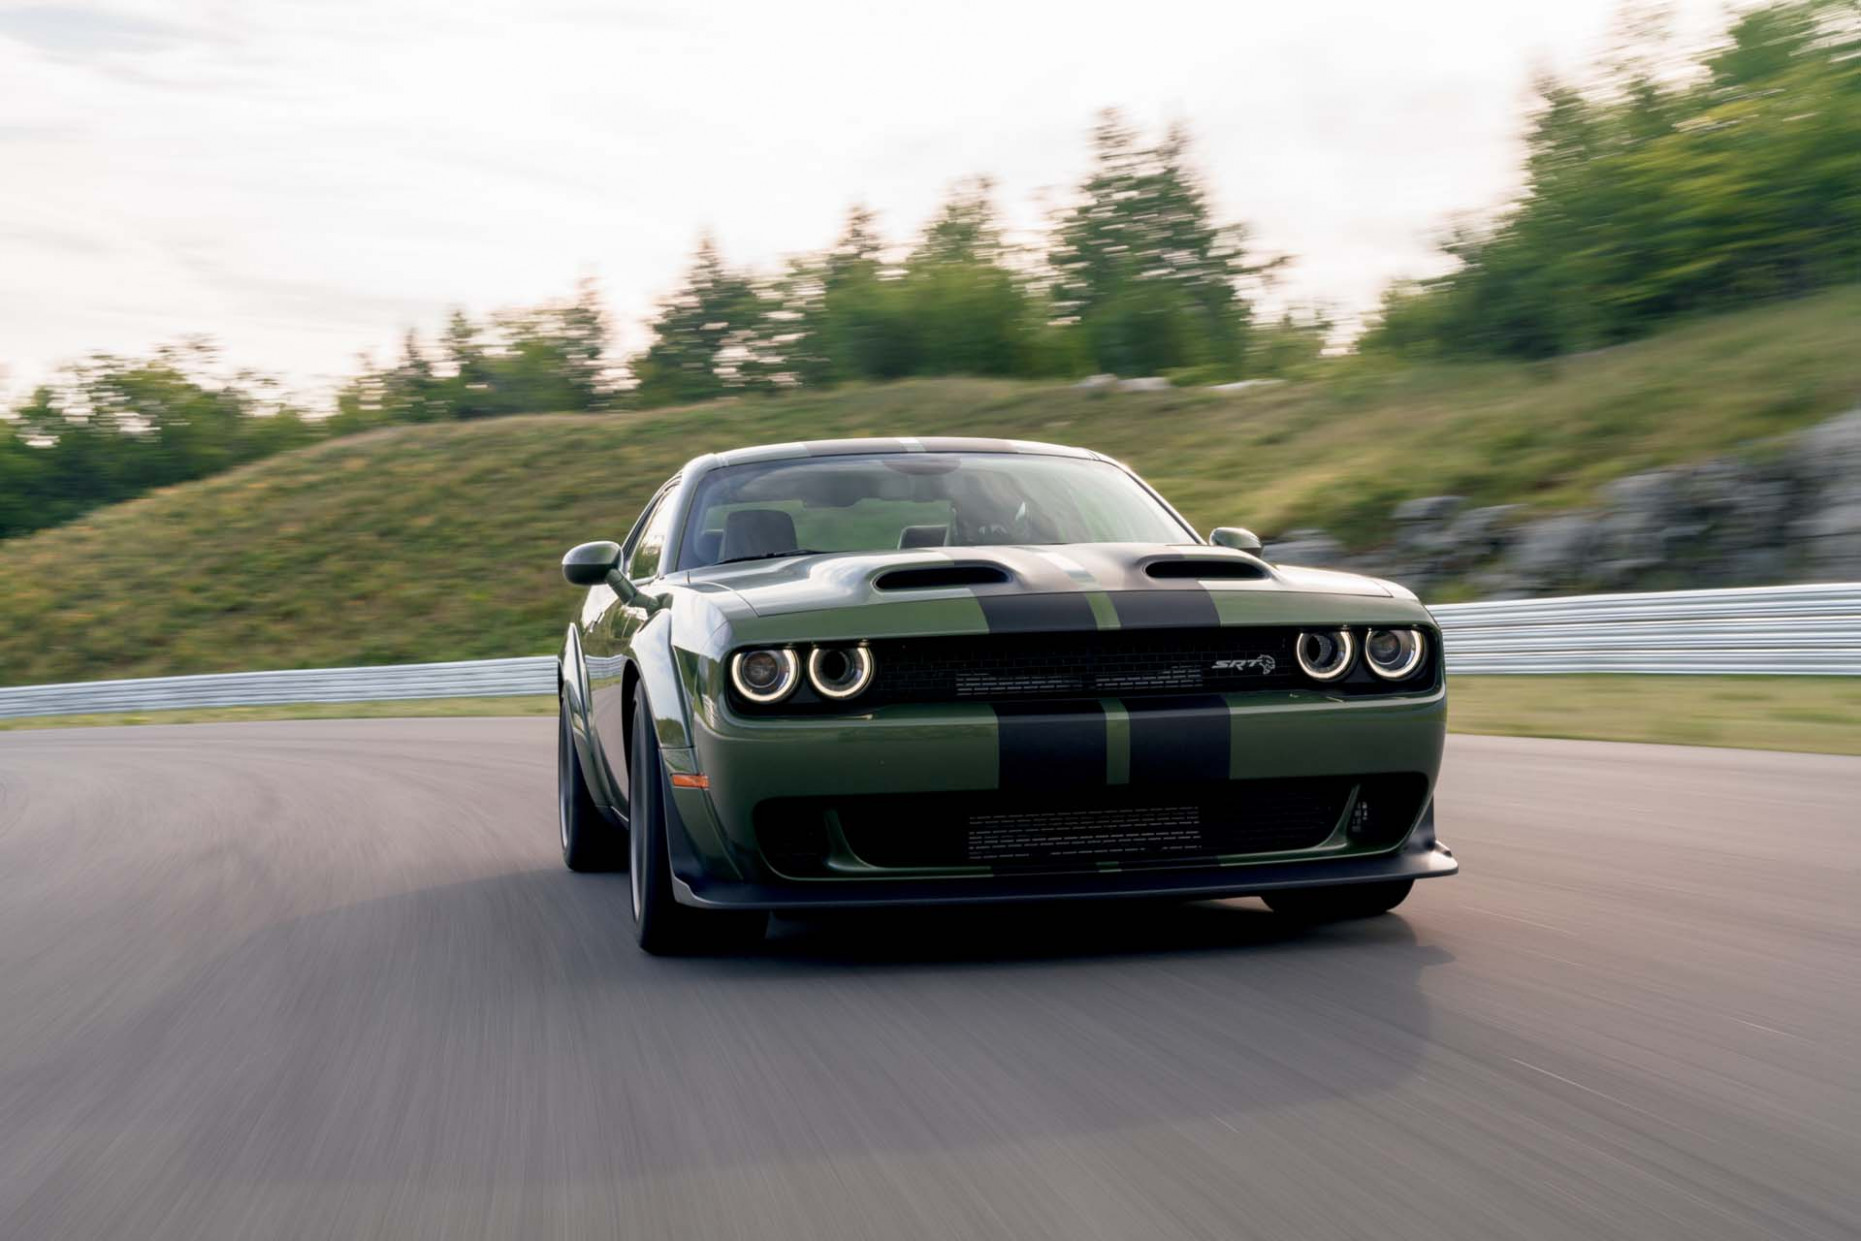 11 Dodge Challenger preview - 2020 dodge hellcat redeye price